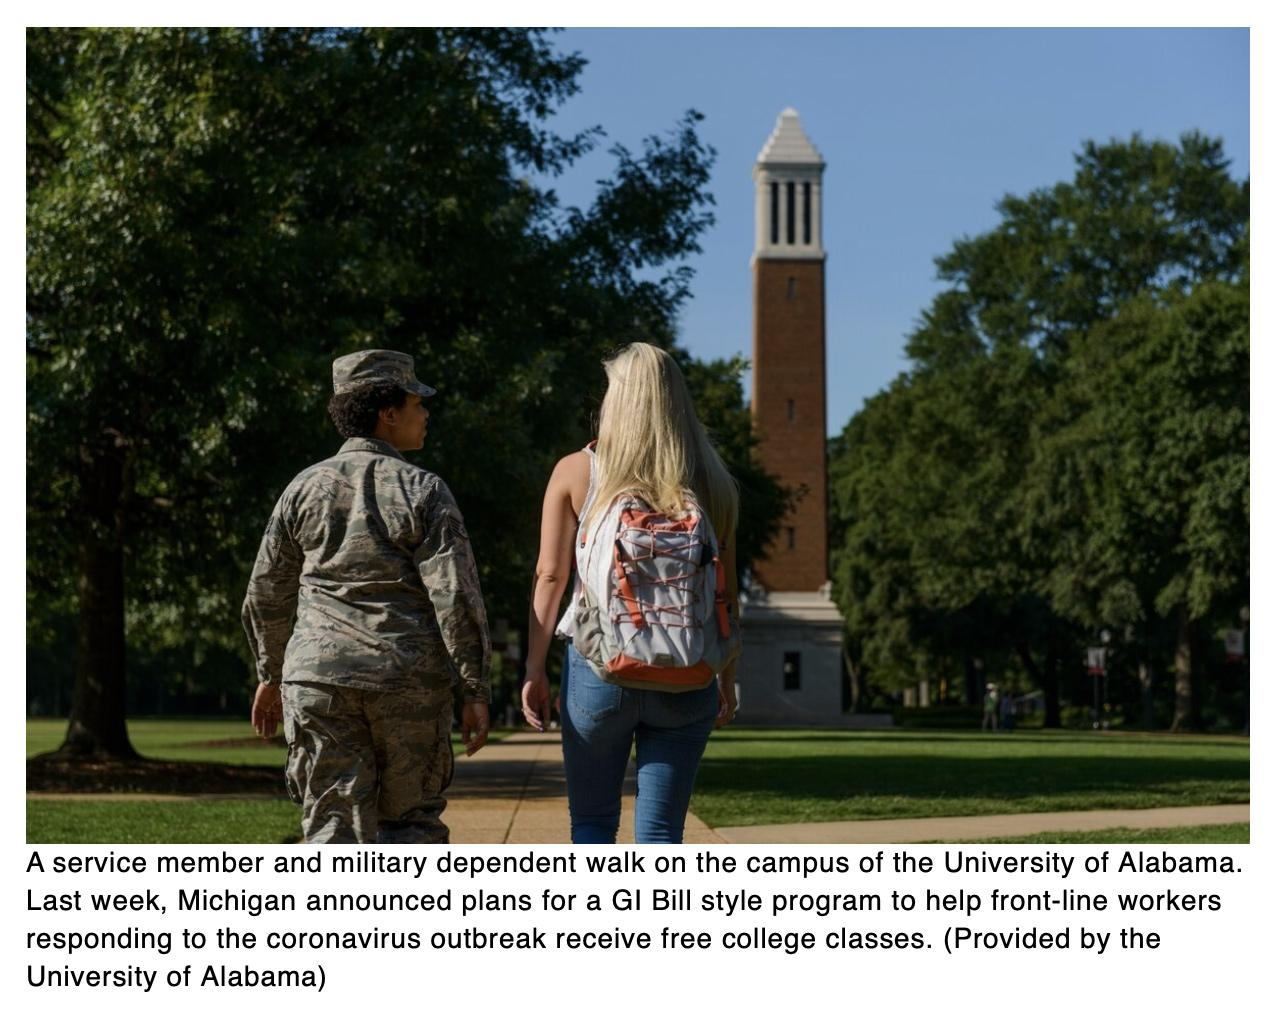 Michigan copies GI Bill benefits for civilians as calls increase for expanding the program beyond the military